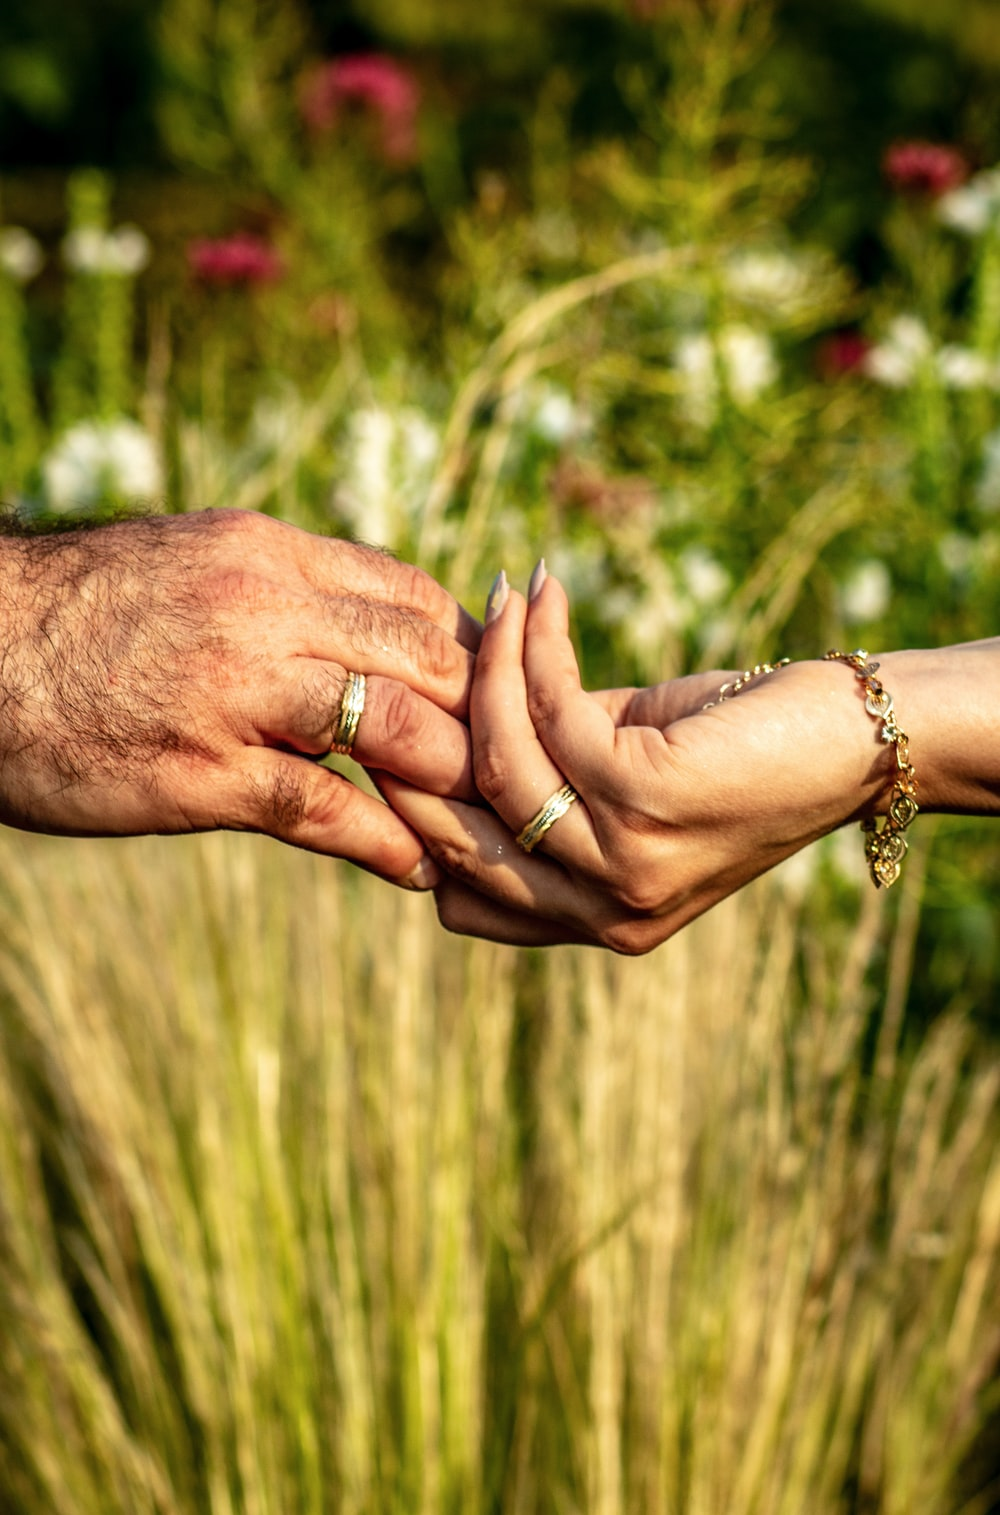 holdings hands with gold-colored ring over flower garden